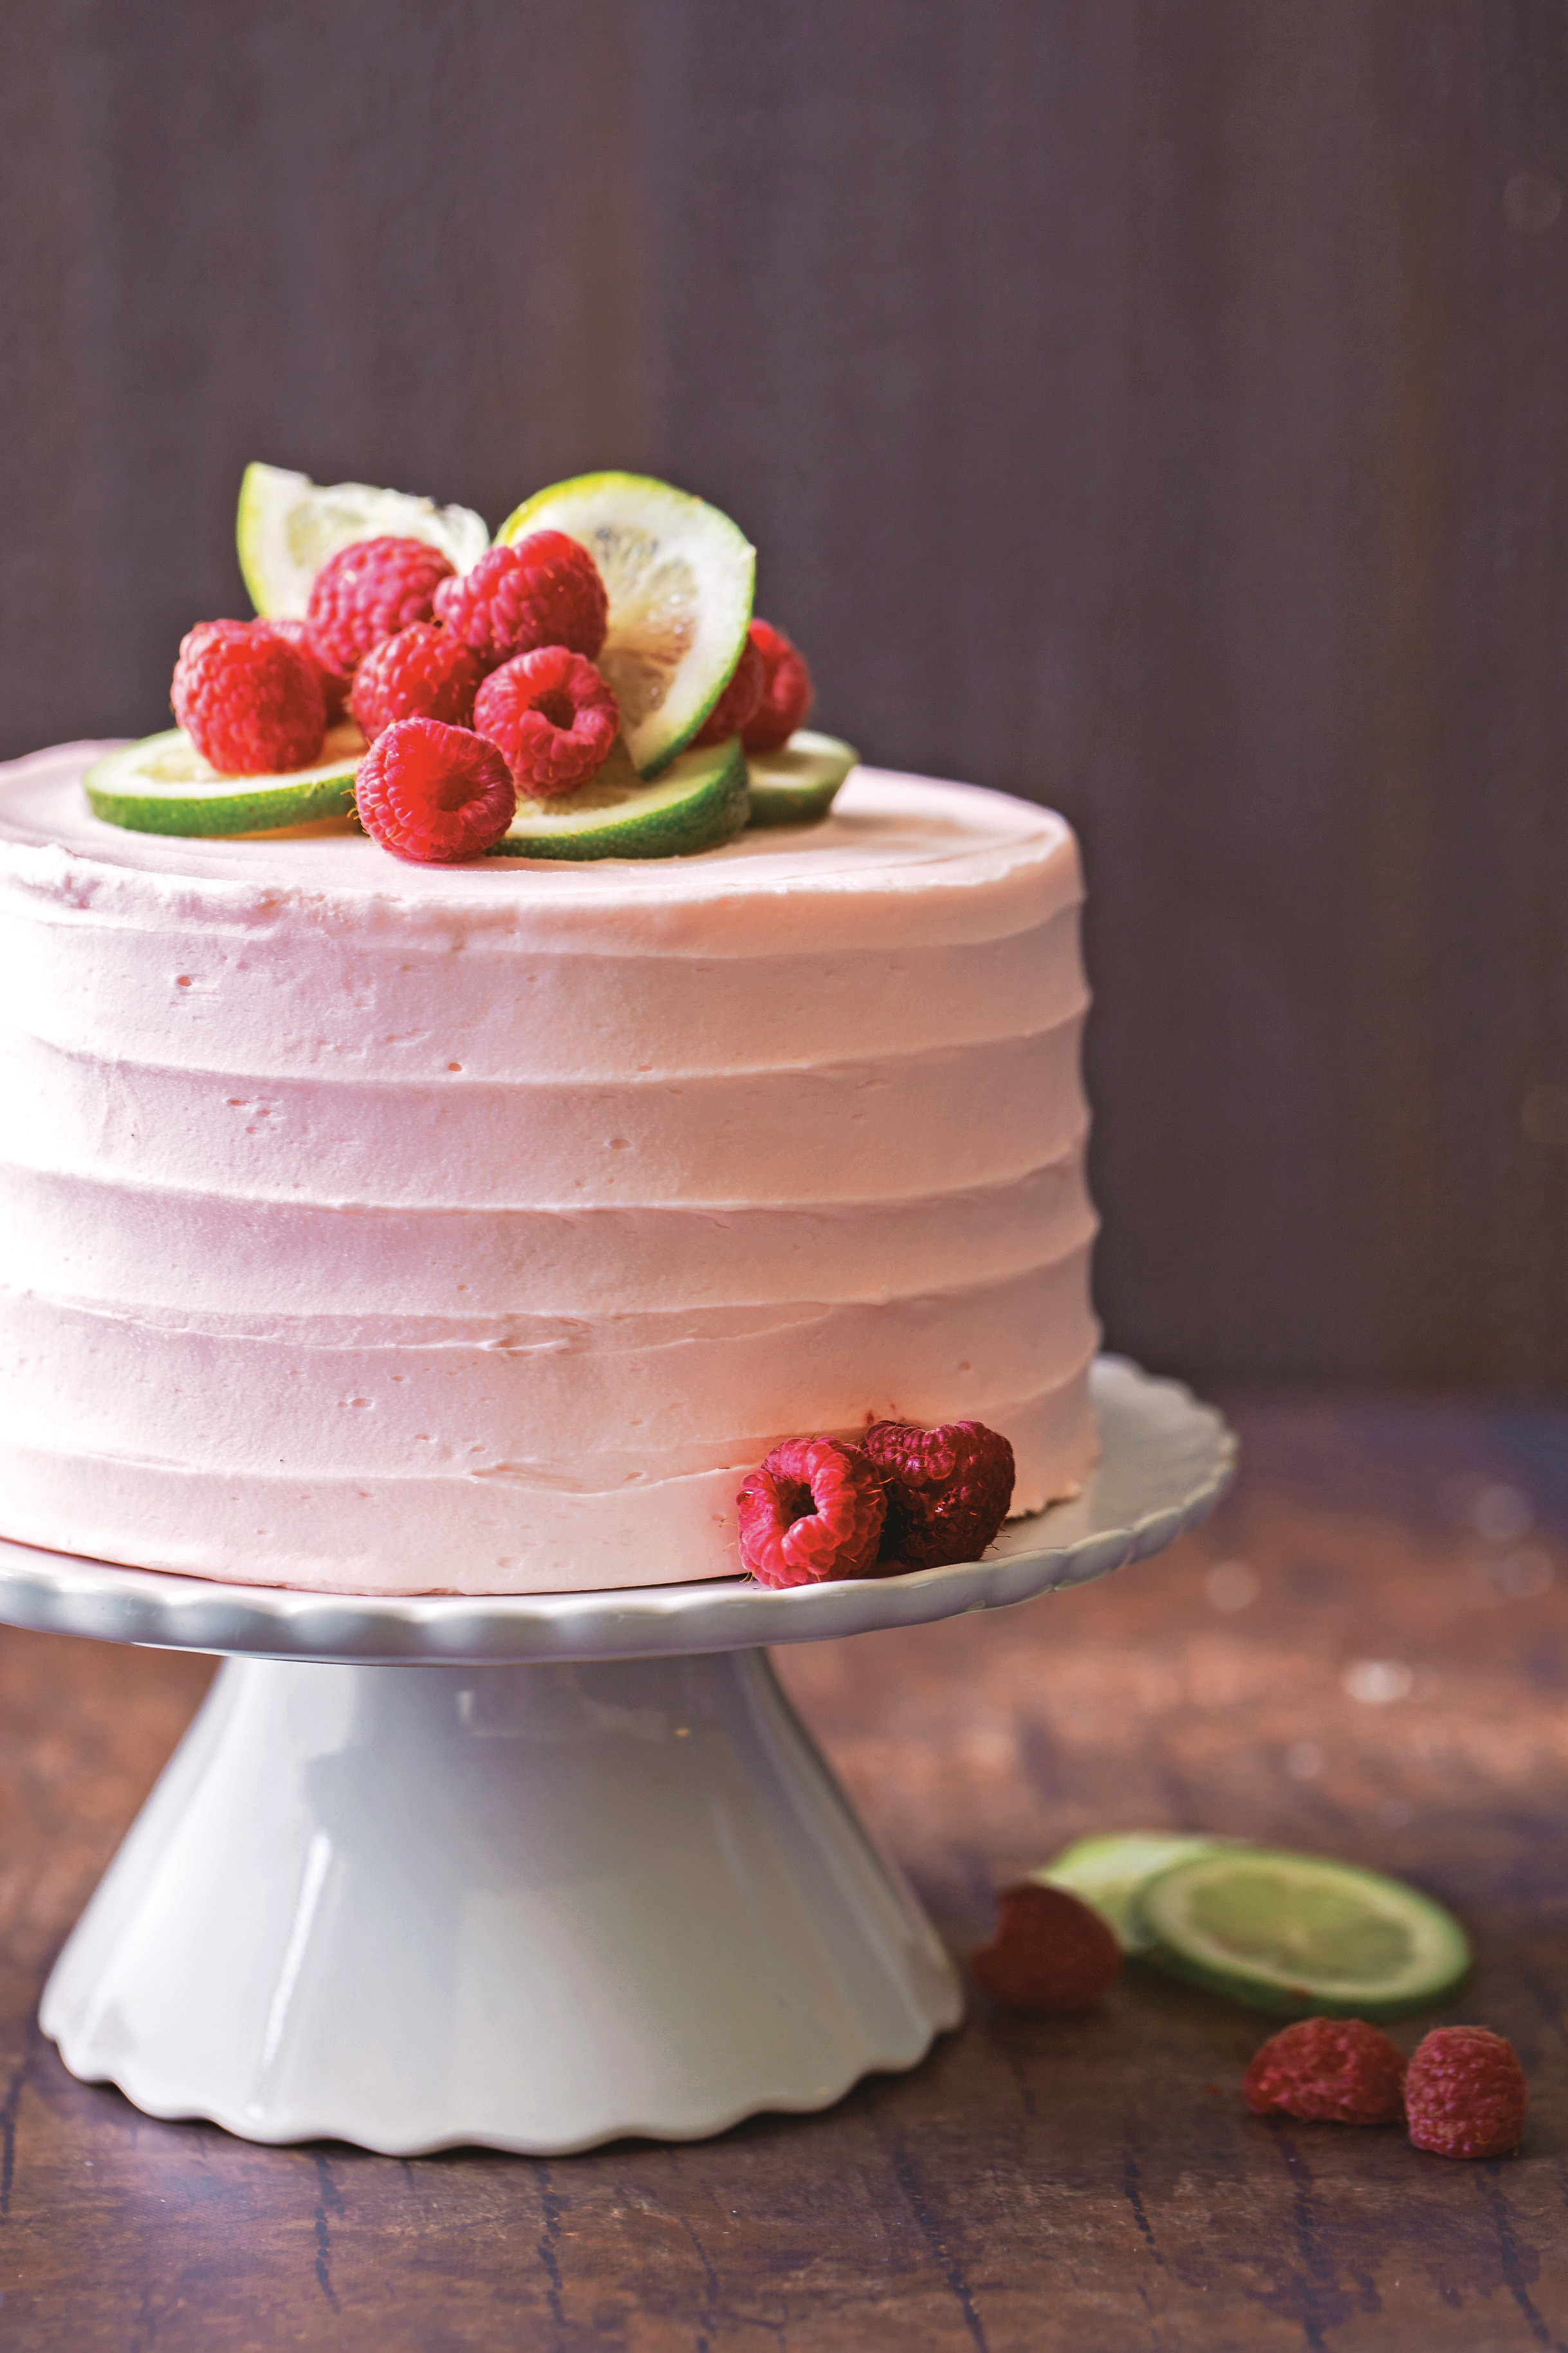 Decadent Fruit Desserts Raspberry Lime Cake.jpg